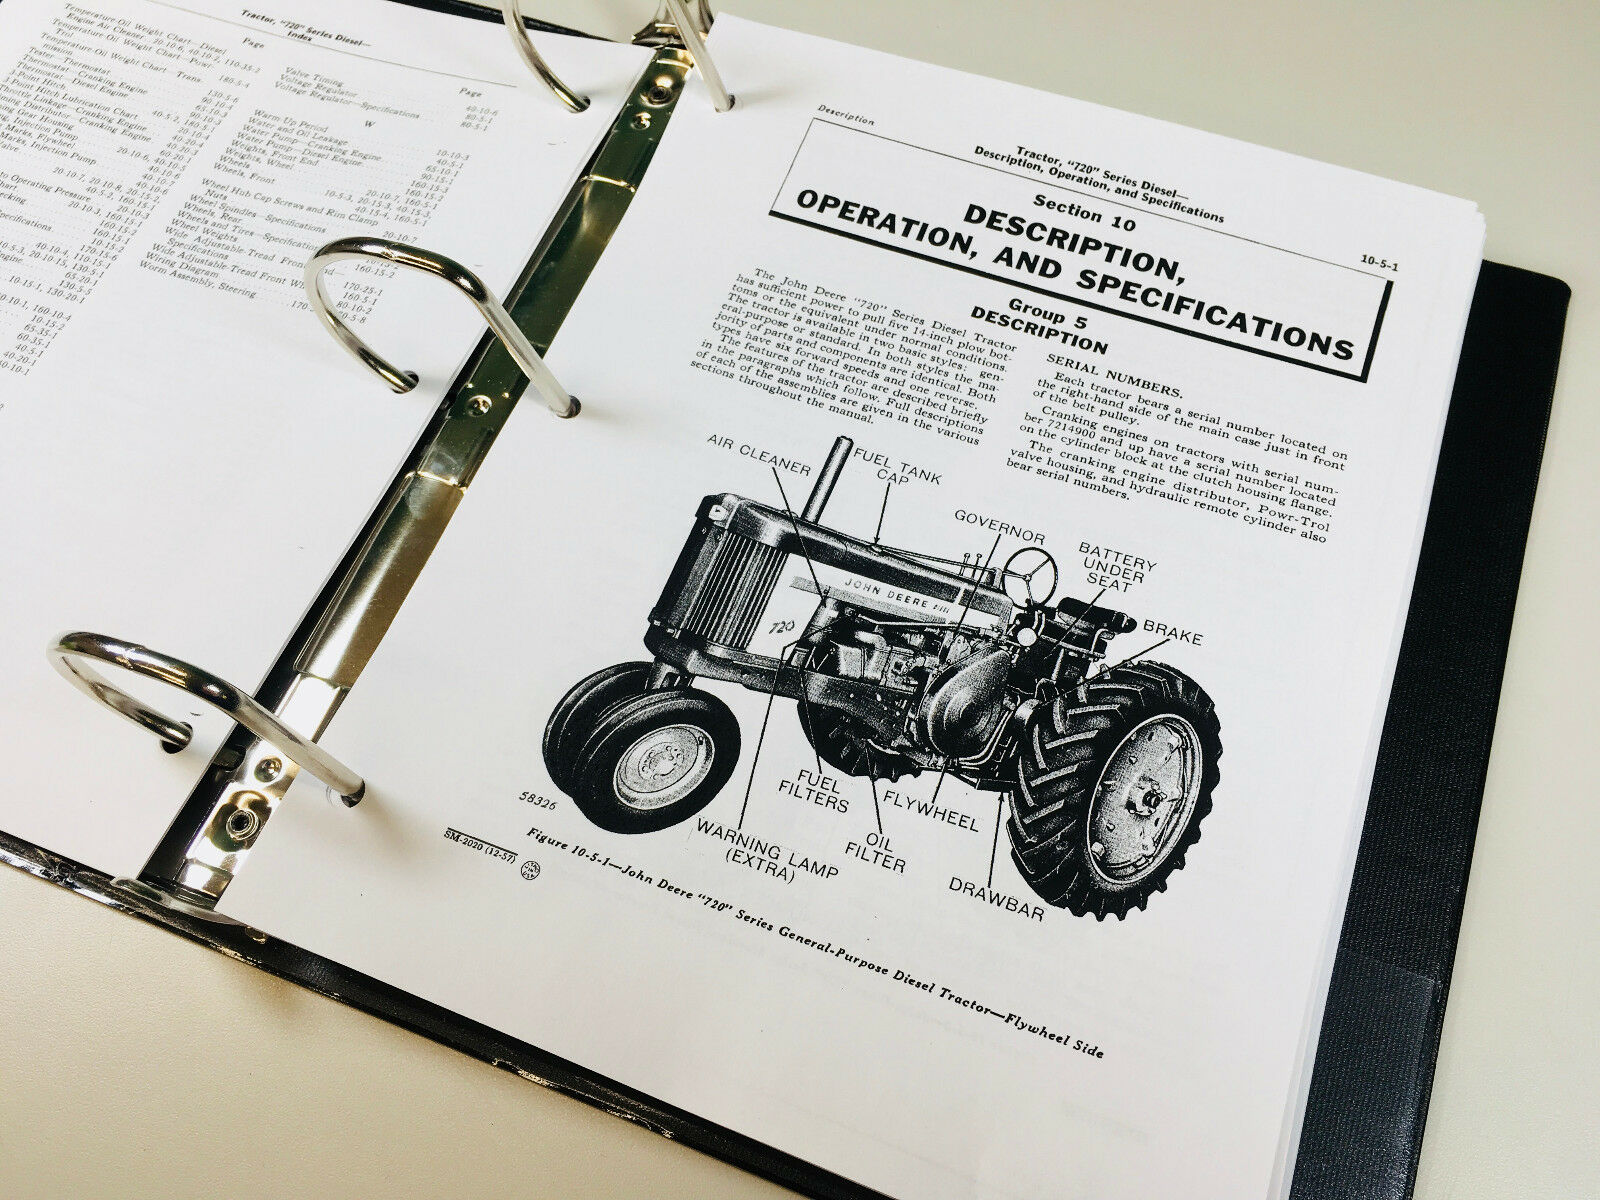 wiring diagram for 720 john deere tractor service manual for john deere 720 730 diesel tractor technical  service manual for john deere 720 730